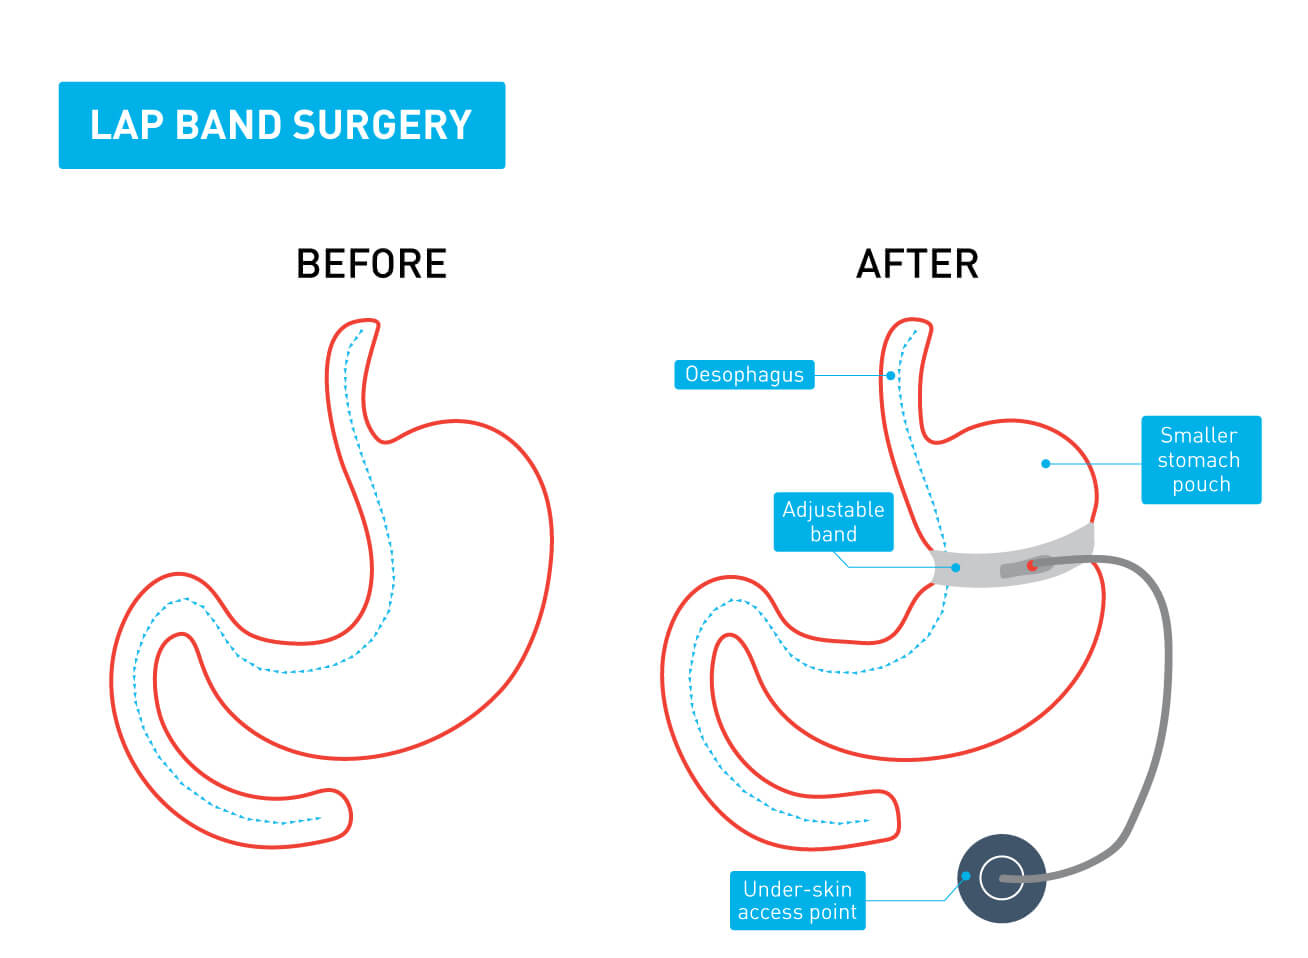 A graphic showing the difference between a stomach before and after lap band surgery